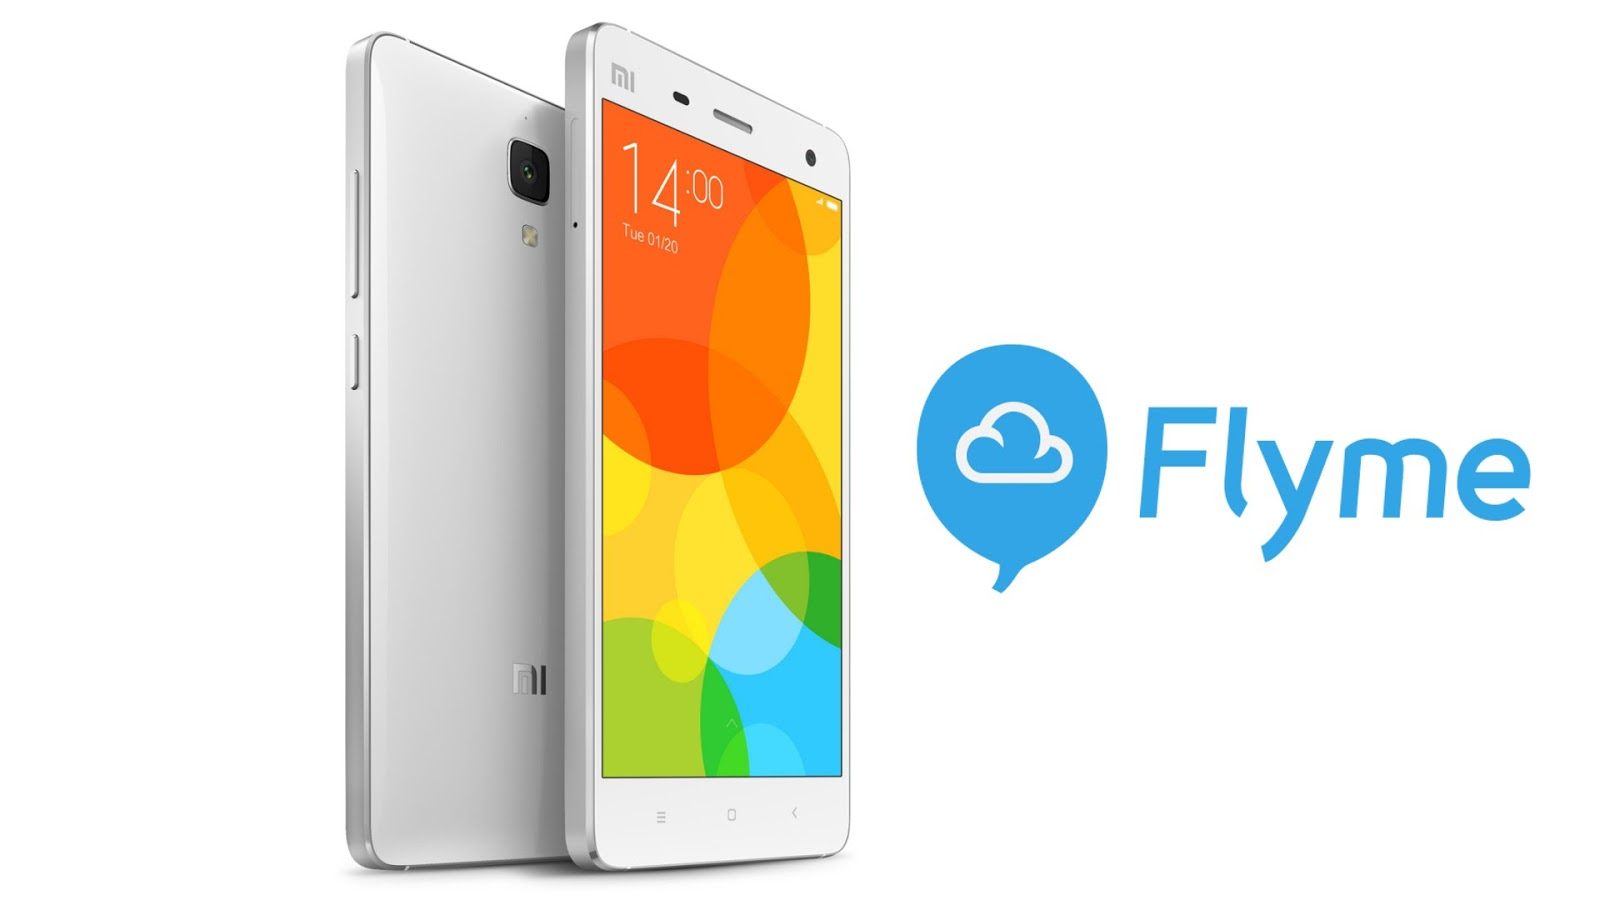 Custom ROM Flyme OS for Xiaomi Mi4i - Android Zone